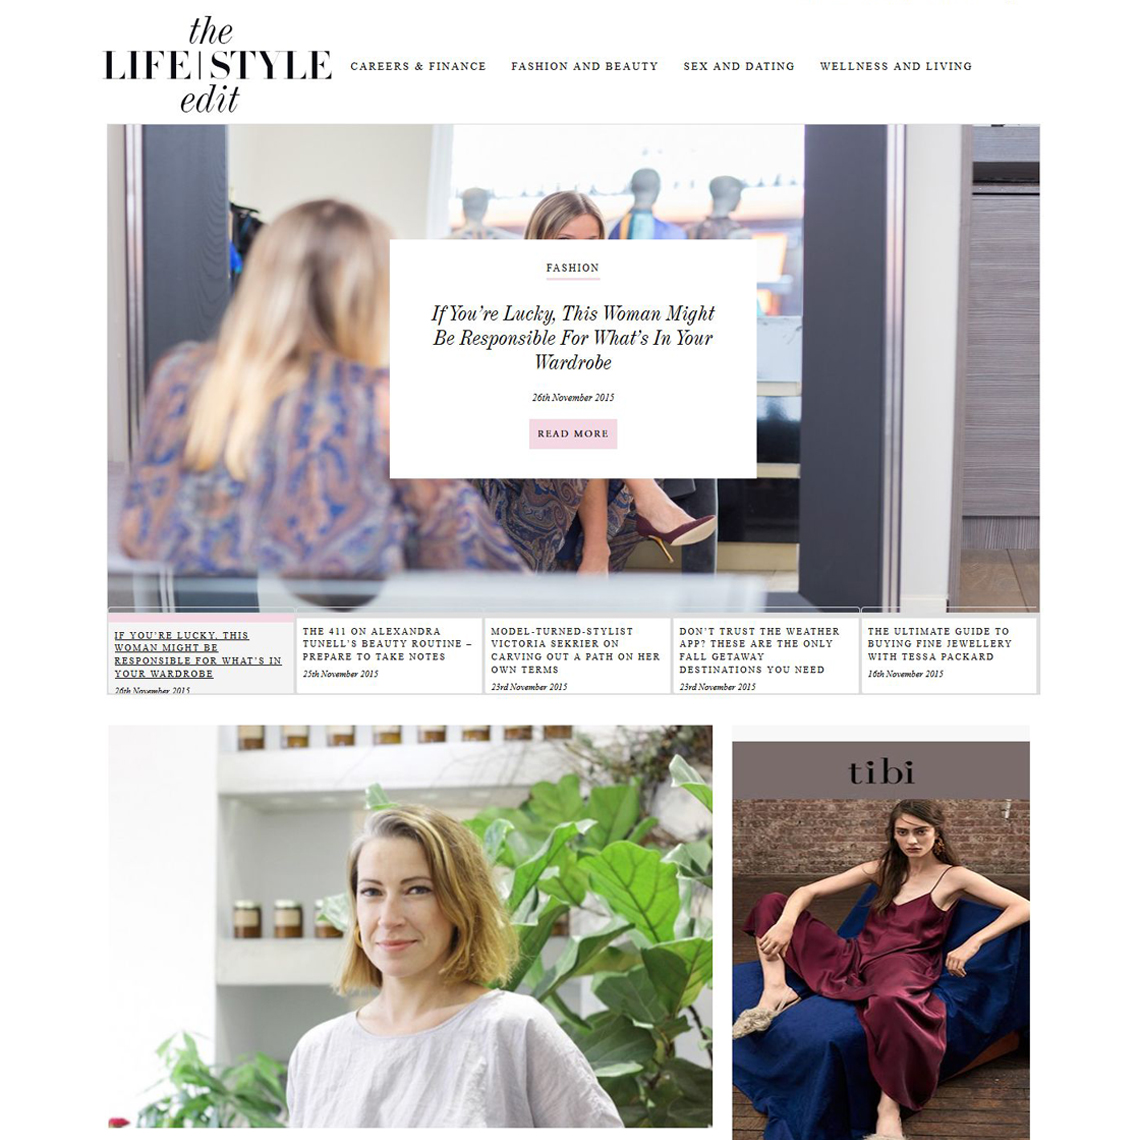 bloved-lifestyle-blog-top-10-style-blogs-2016-the-lifestyle-edit